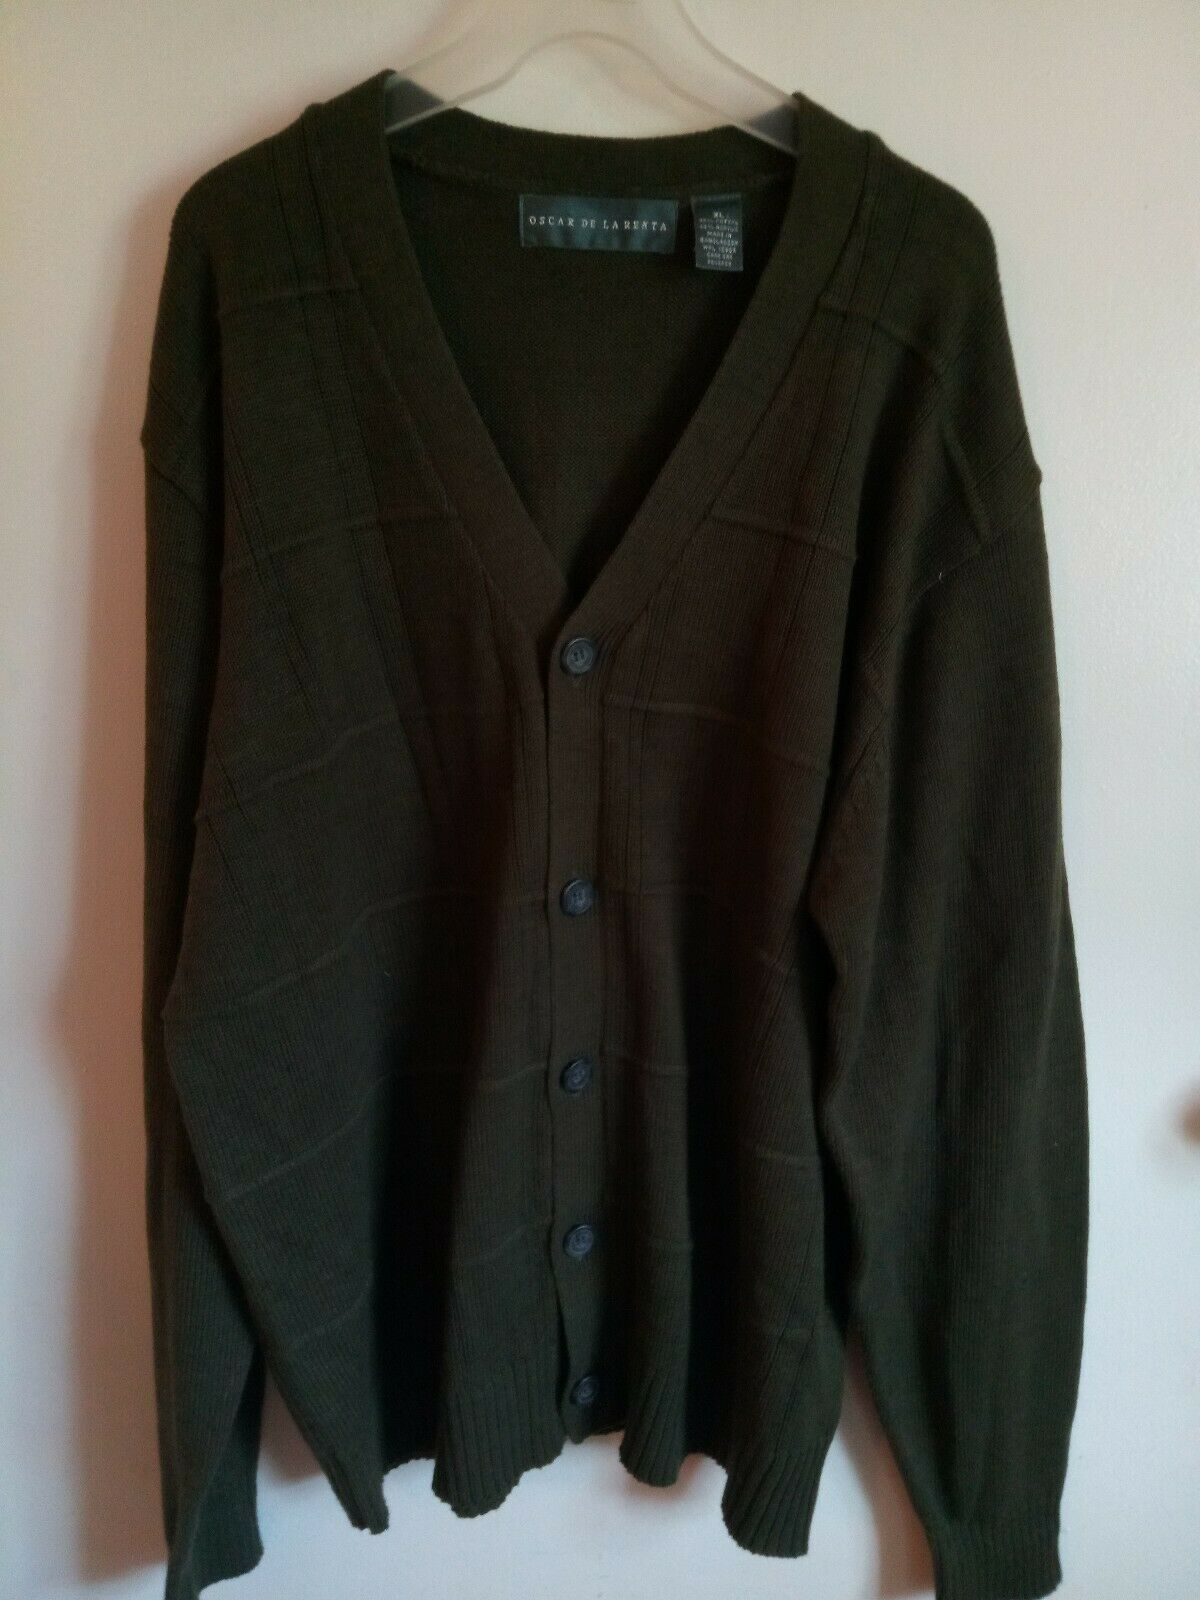 Oscar De La Renta Men's Forrest Green Button Sweater Size XL